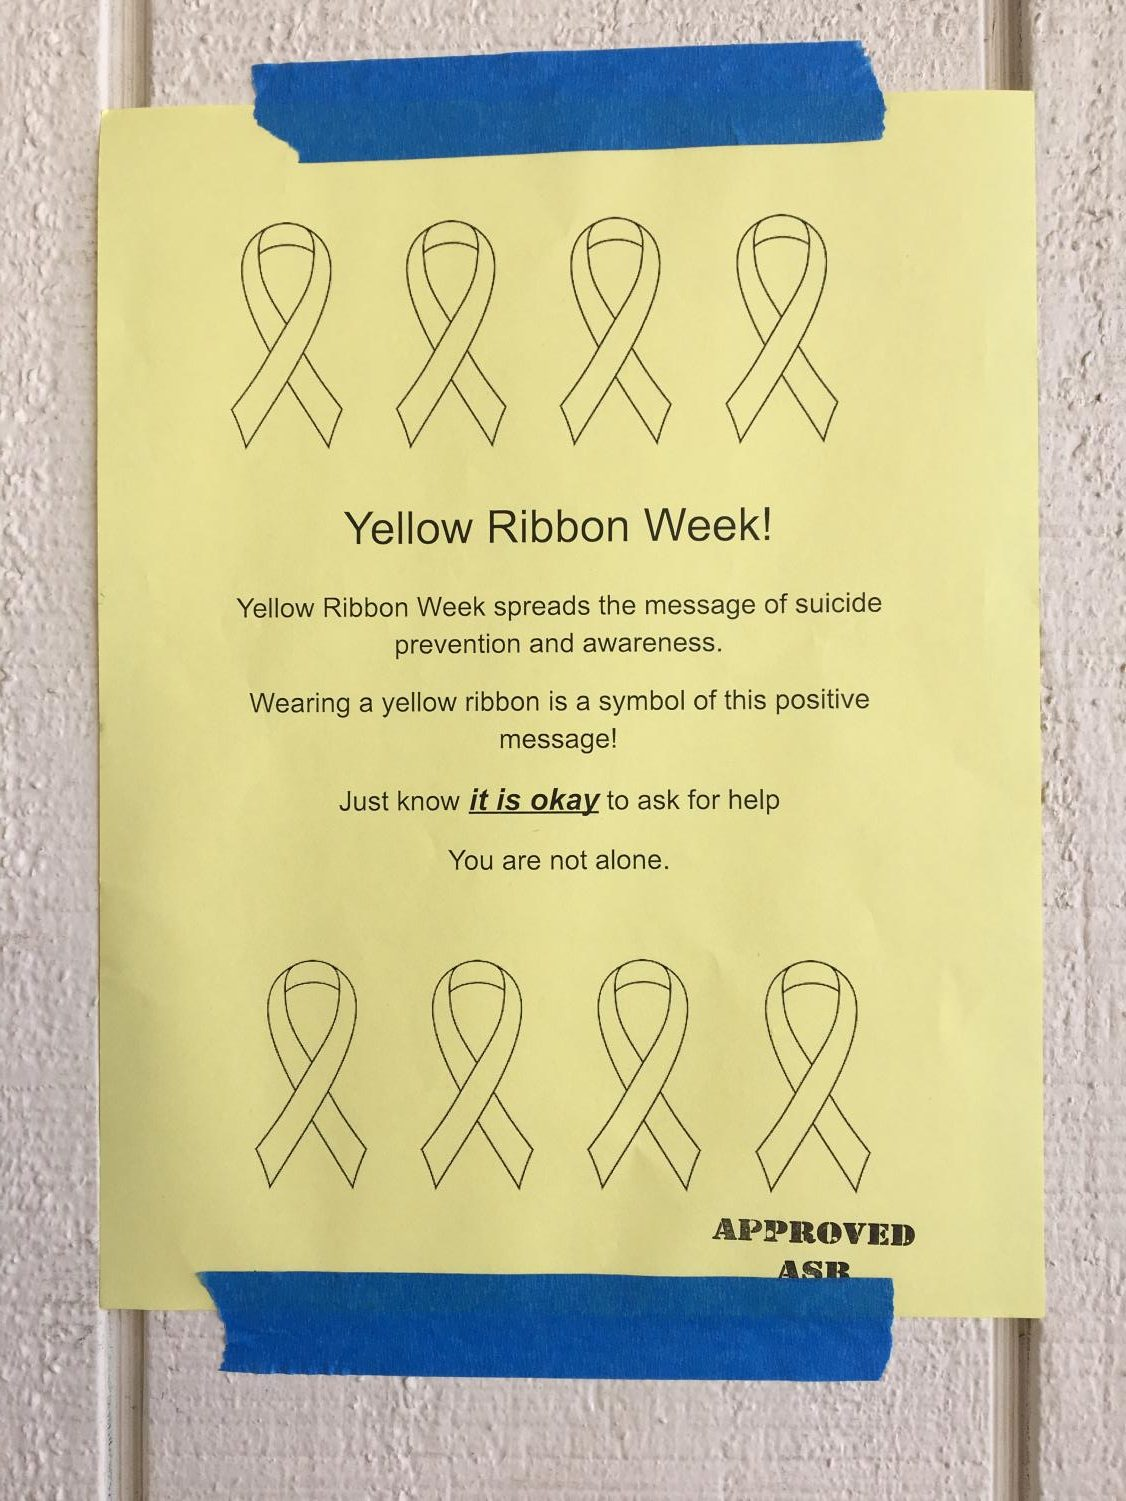 Posters are up around campus reminding students to wear yellow on Friday.